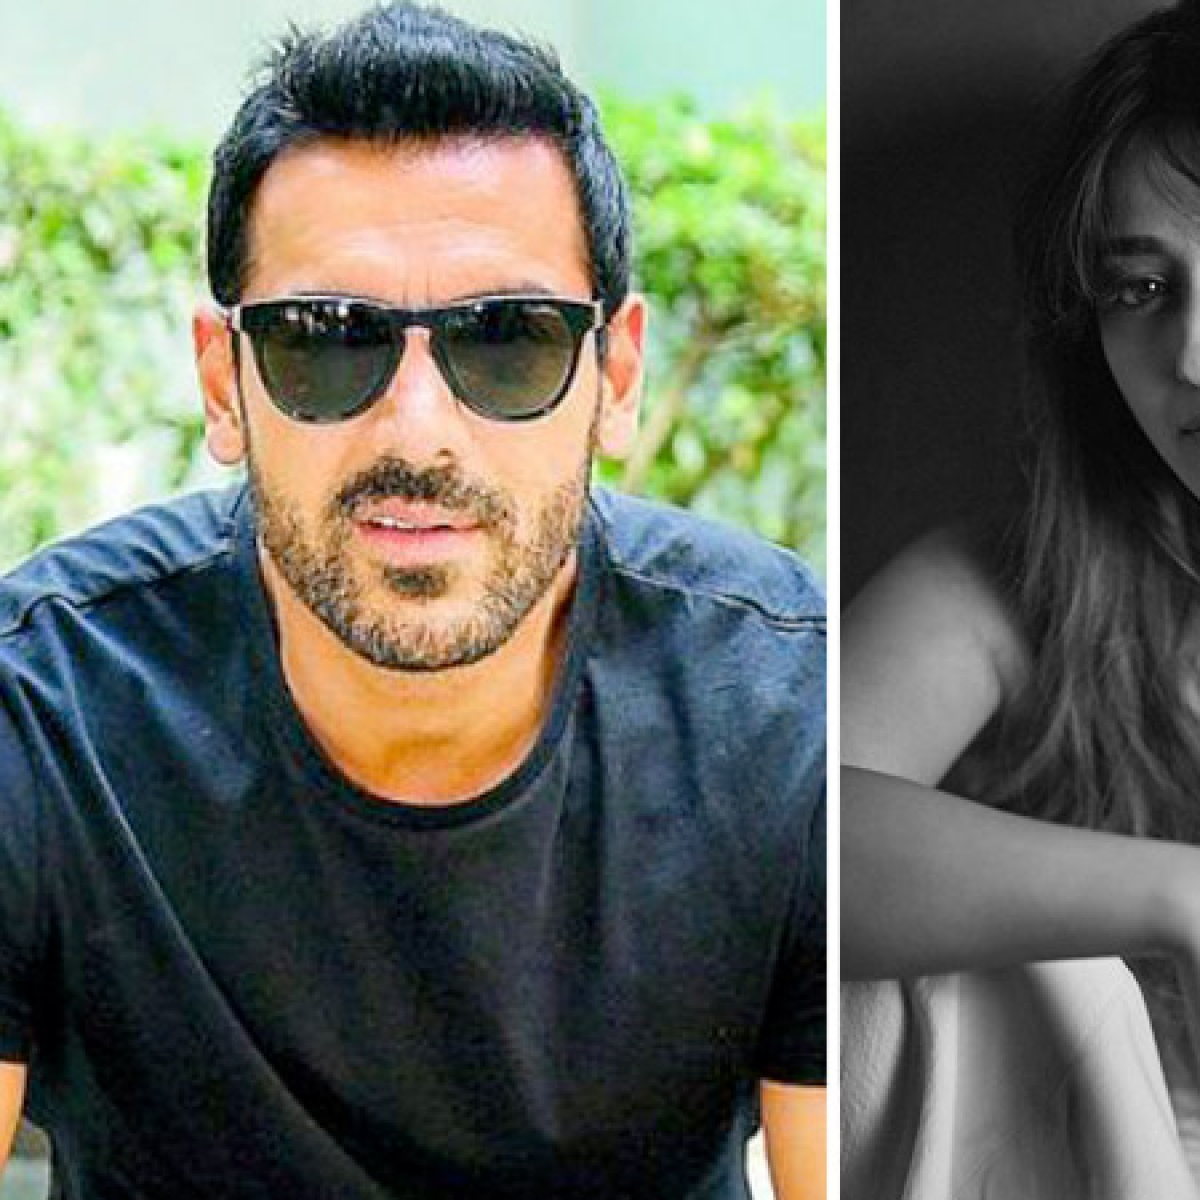 Sridevi's song 'Tera Bimaar Mera Dil' to be recreated for John Abraham, Ileana D'Cruz starret 'Pagalpanti'